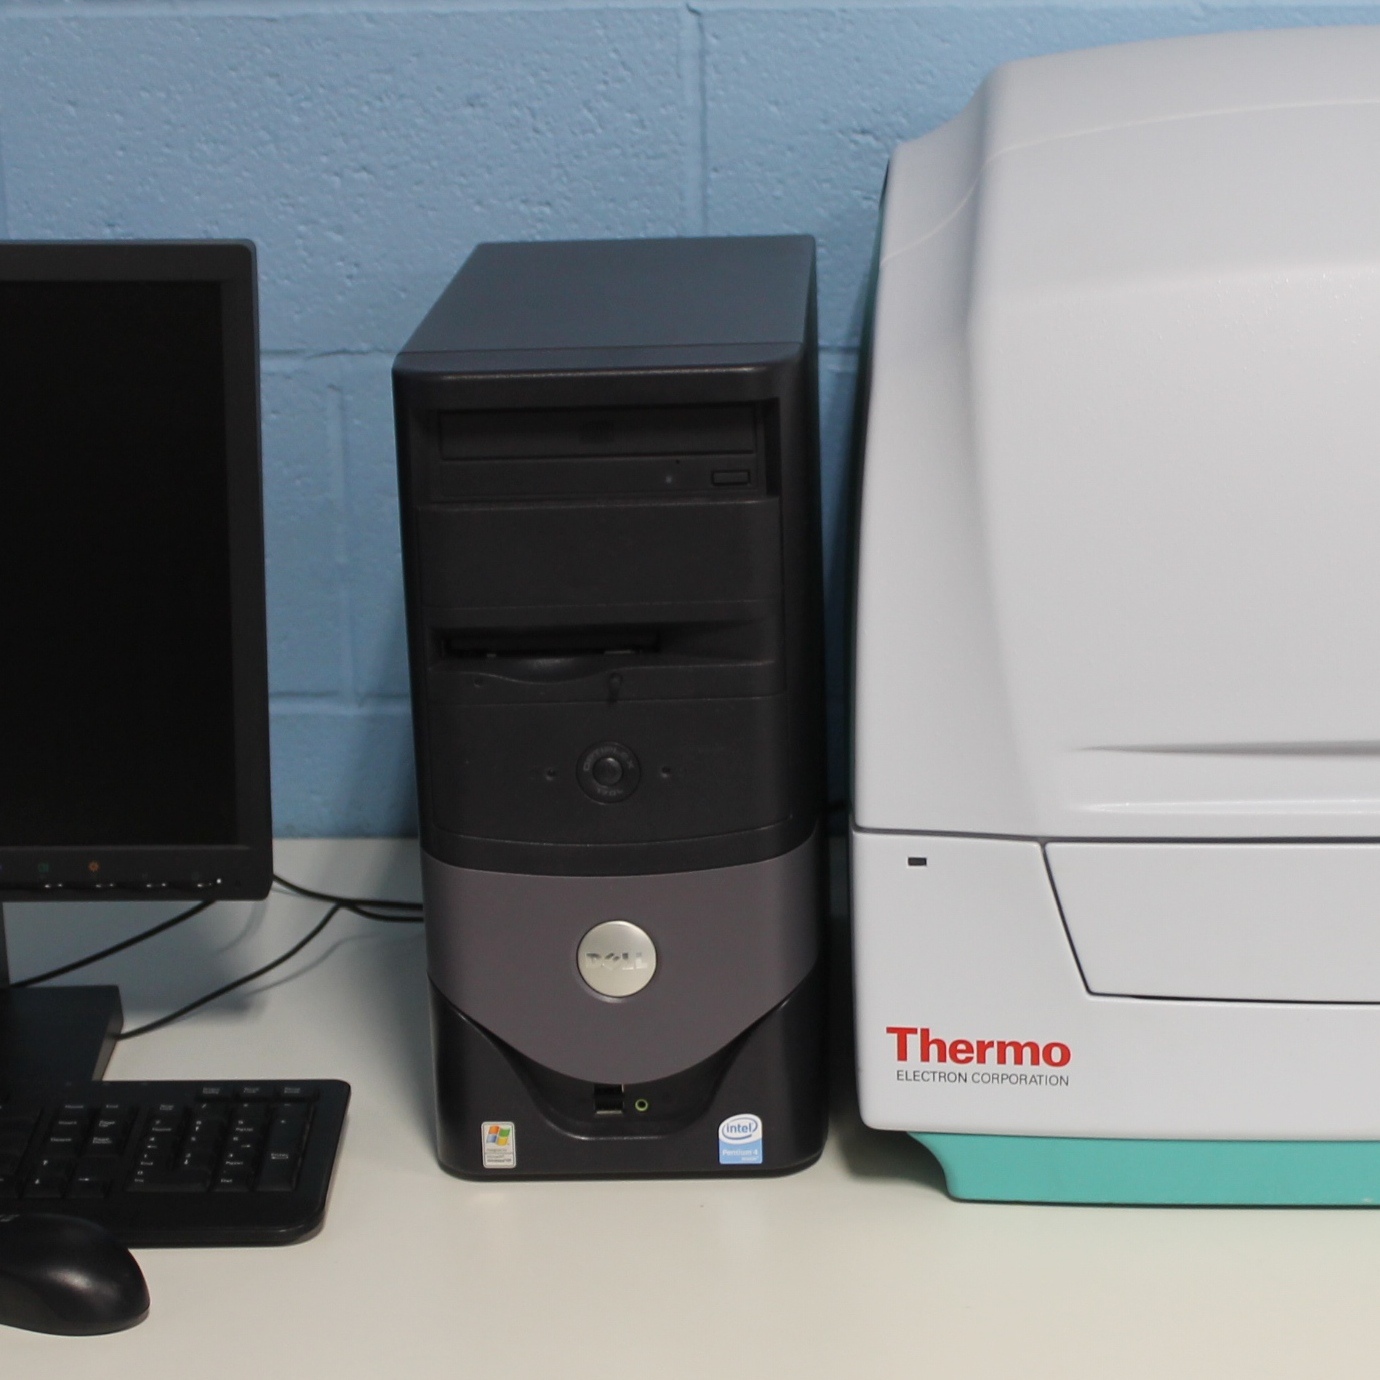 Thermo Electron Corporation Varioskan Multimode Reader Image